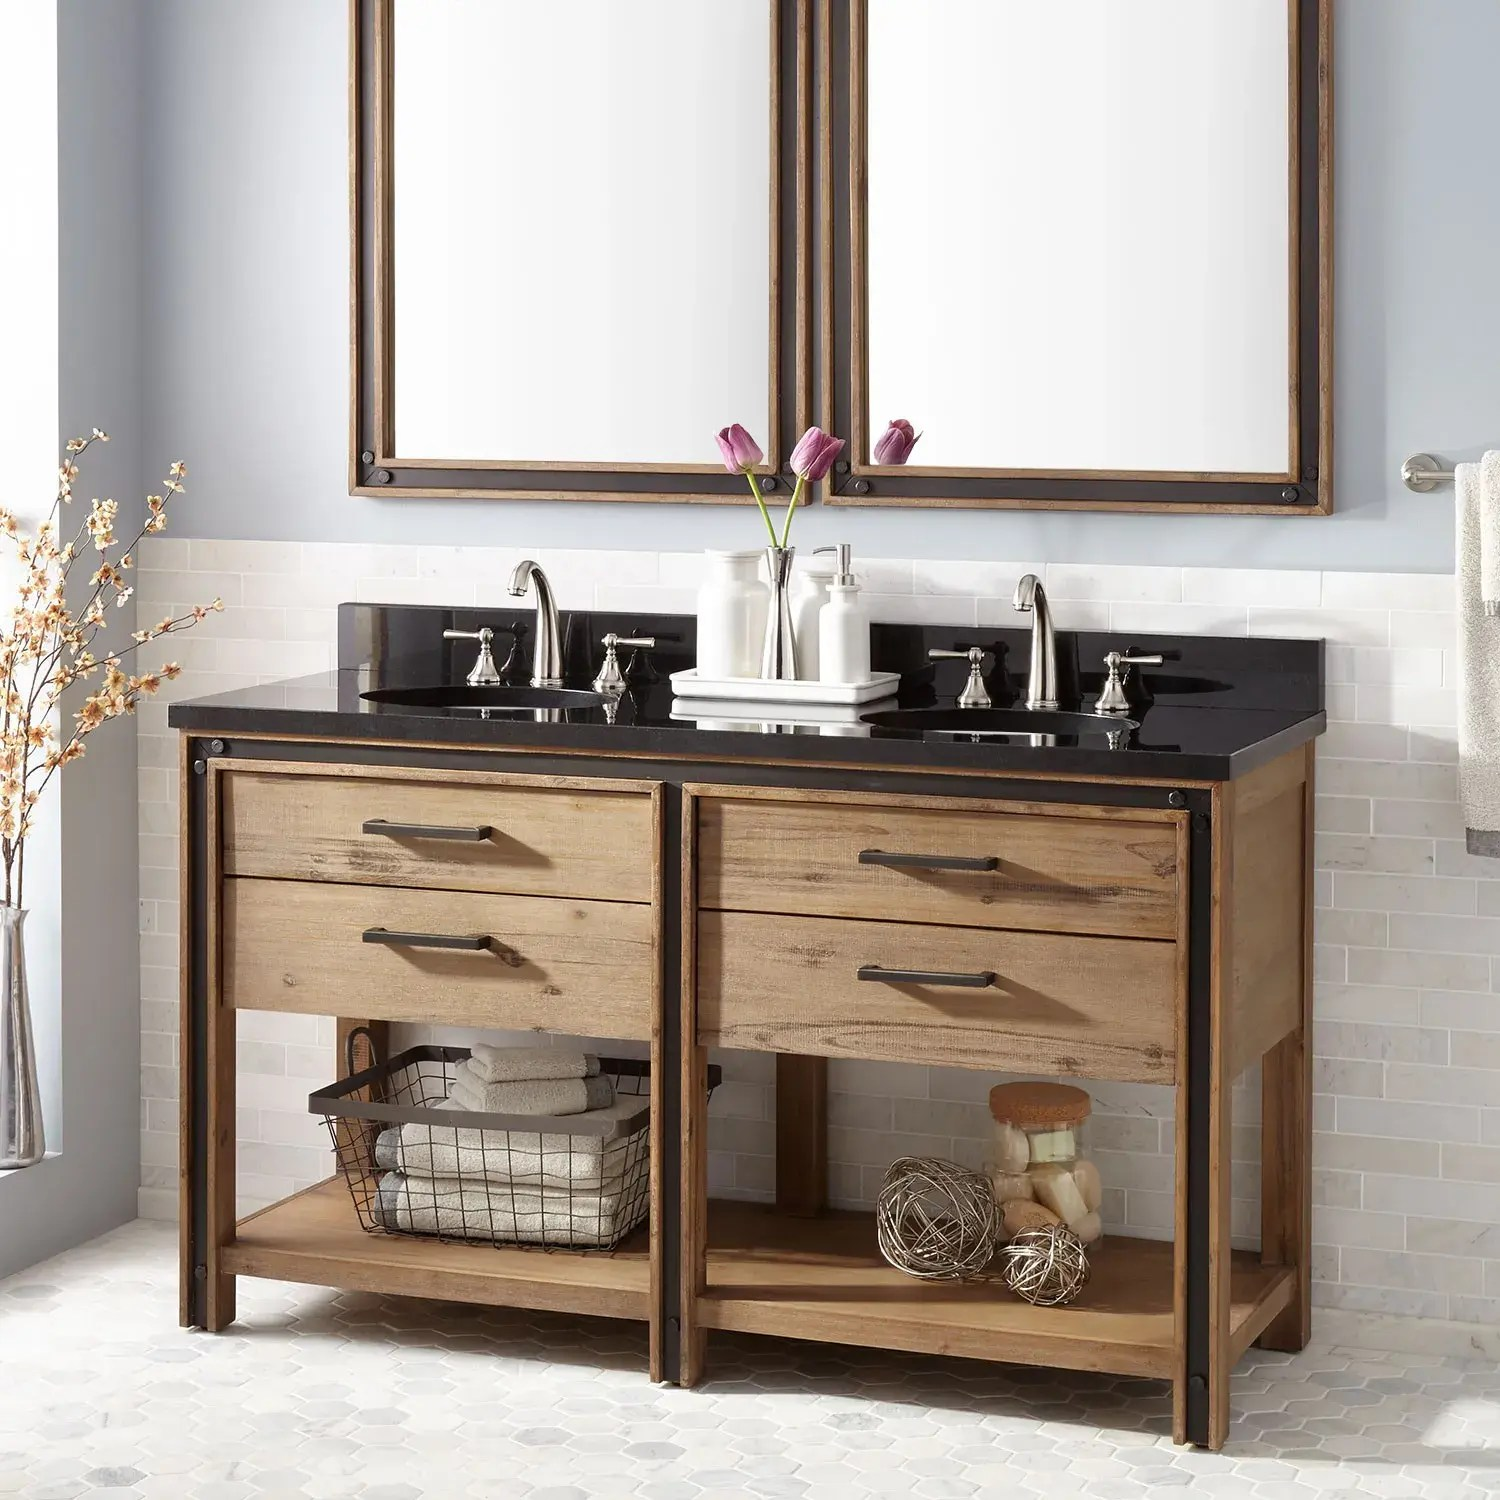 60 celebration console double vanity for undermount sinks rustic acacia